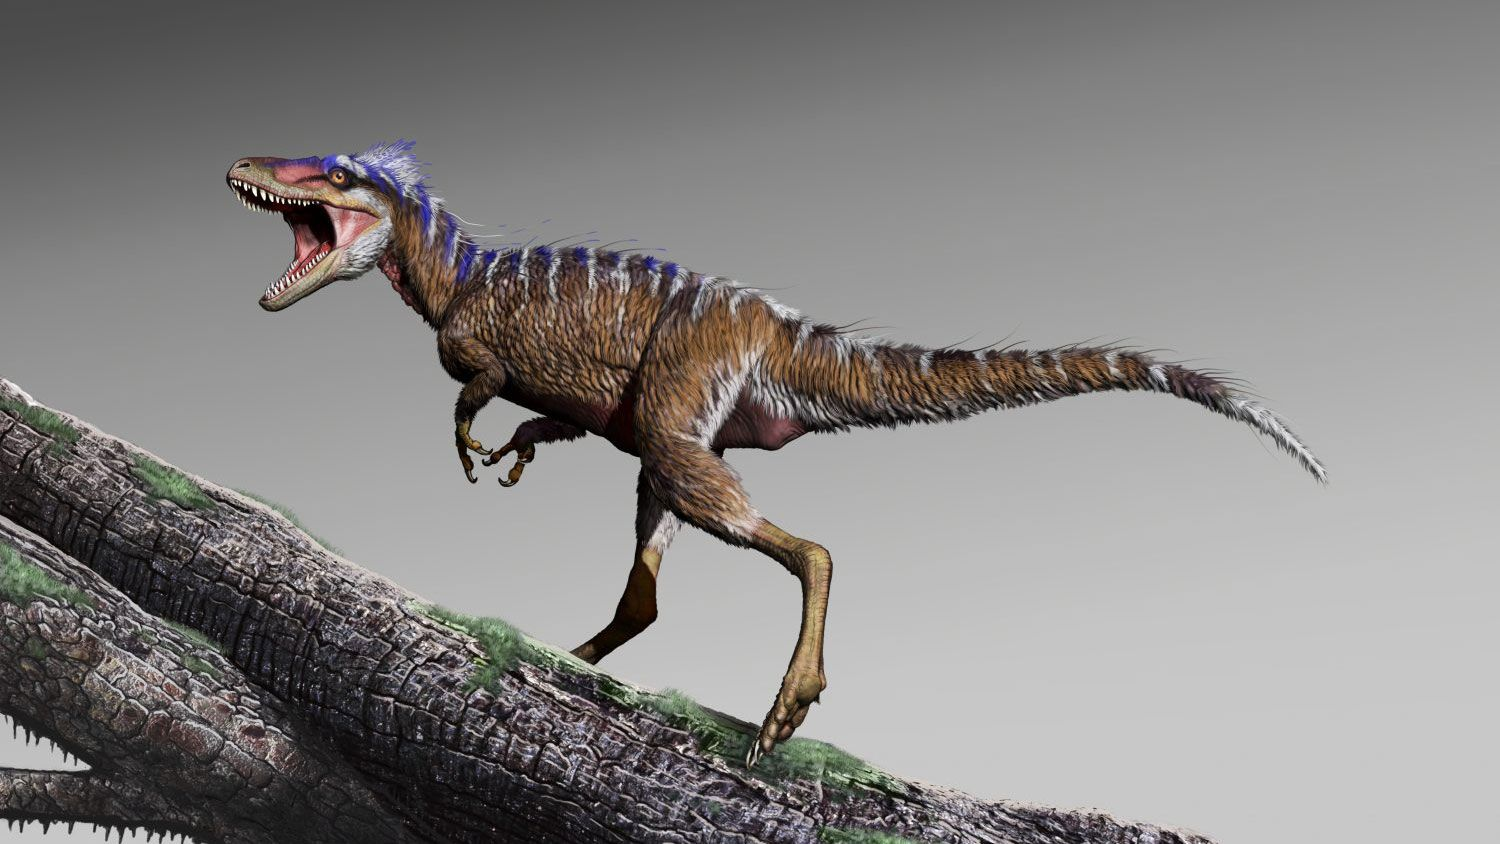 Young T-Rex looked Nothing like Dinosaurs you see in Movies